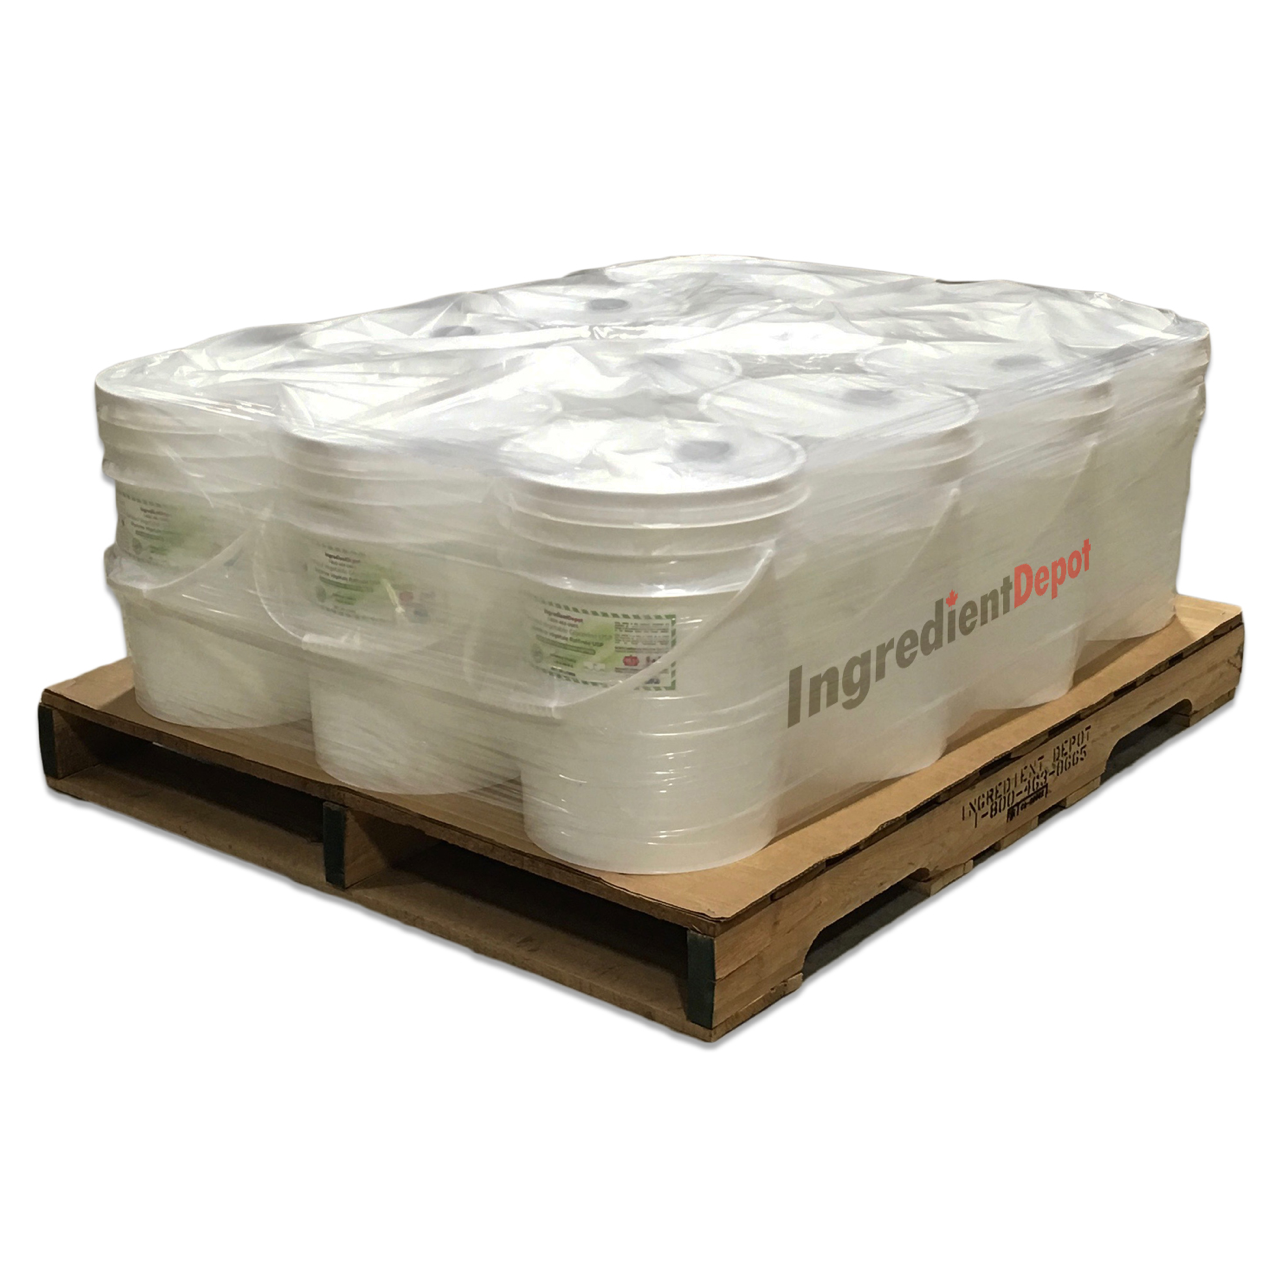 Vegetable Glycerin 99.5% USP Food Grade | 12 x 20 litres on a Pallet